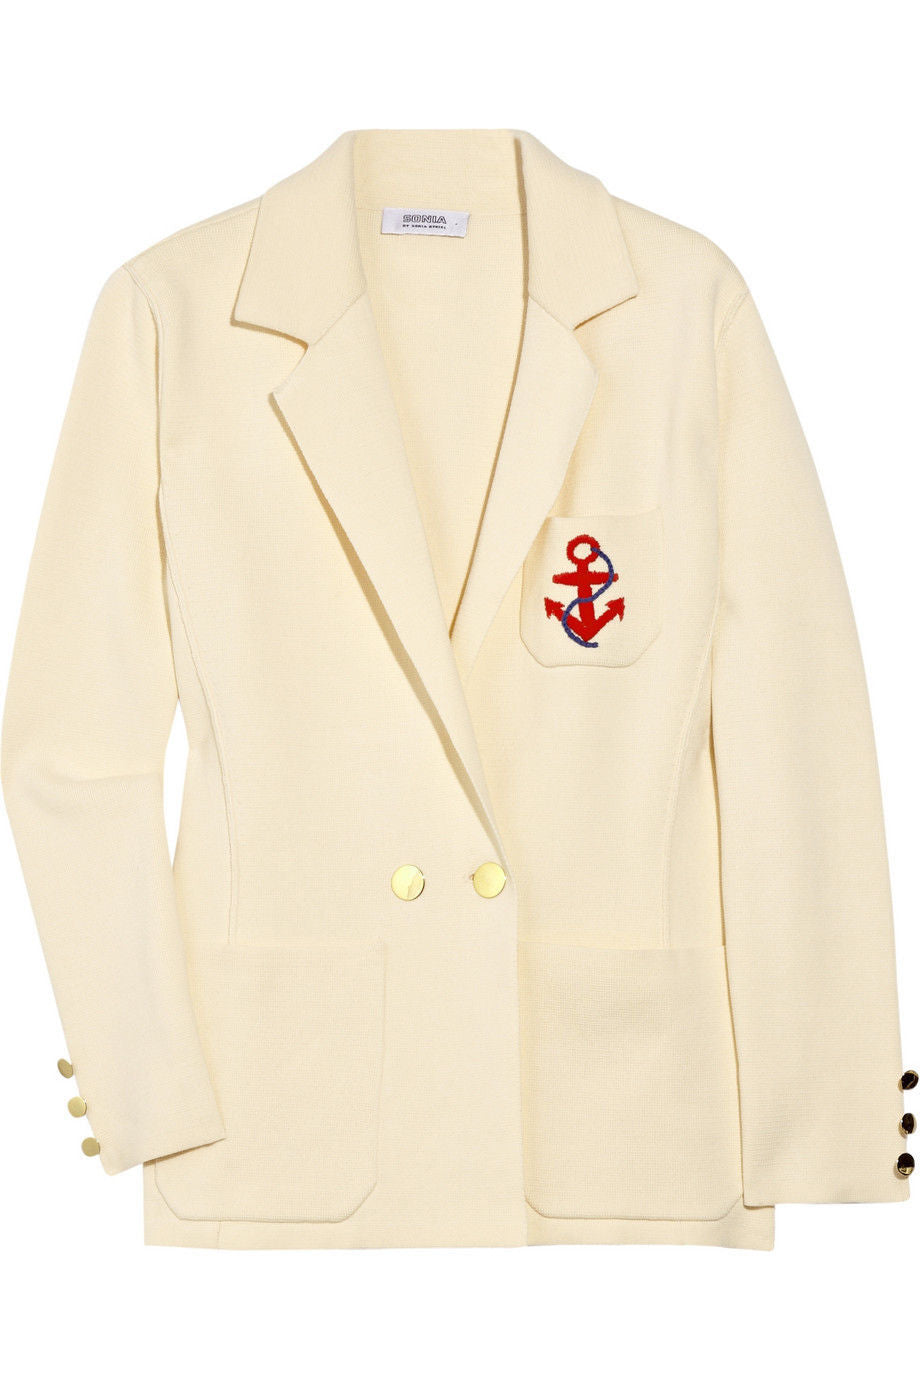 SONIA by SONIA RYKIEL Anchor Embroidered Cotton Blazer SIZE M - secondfirst